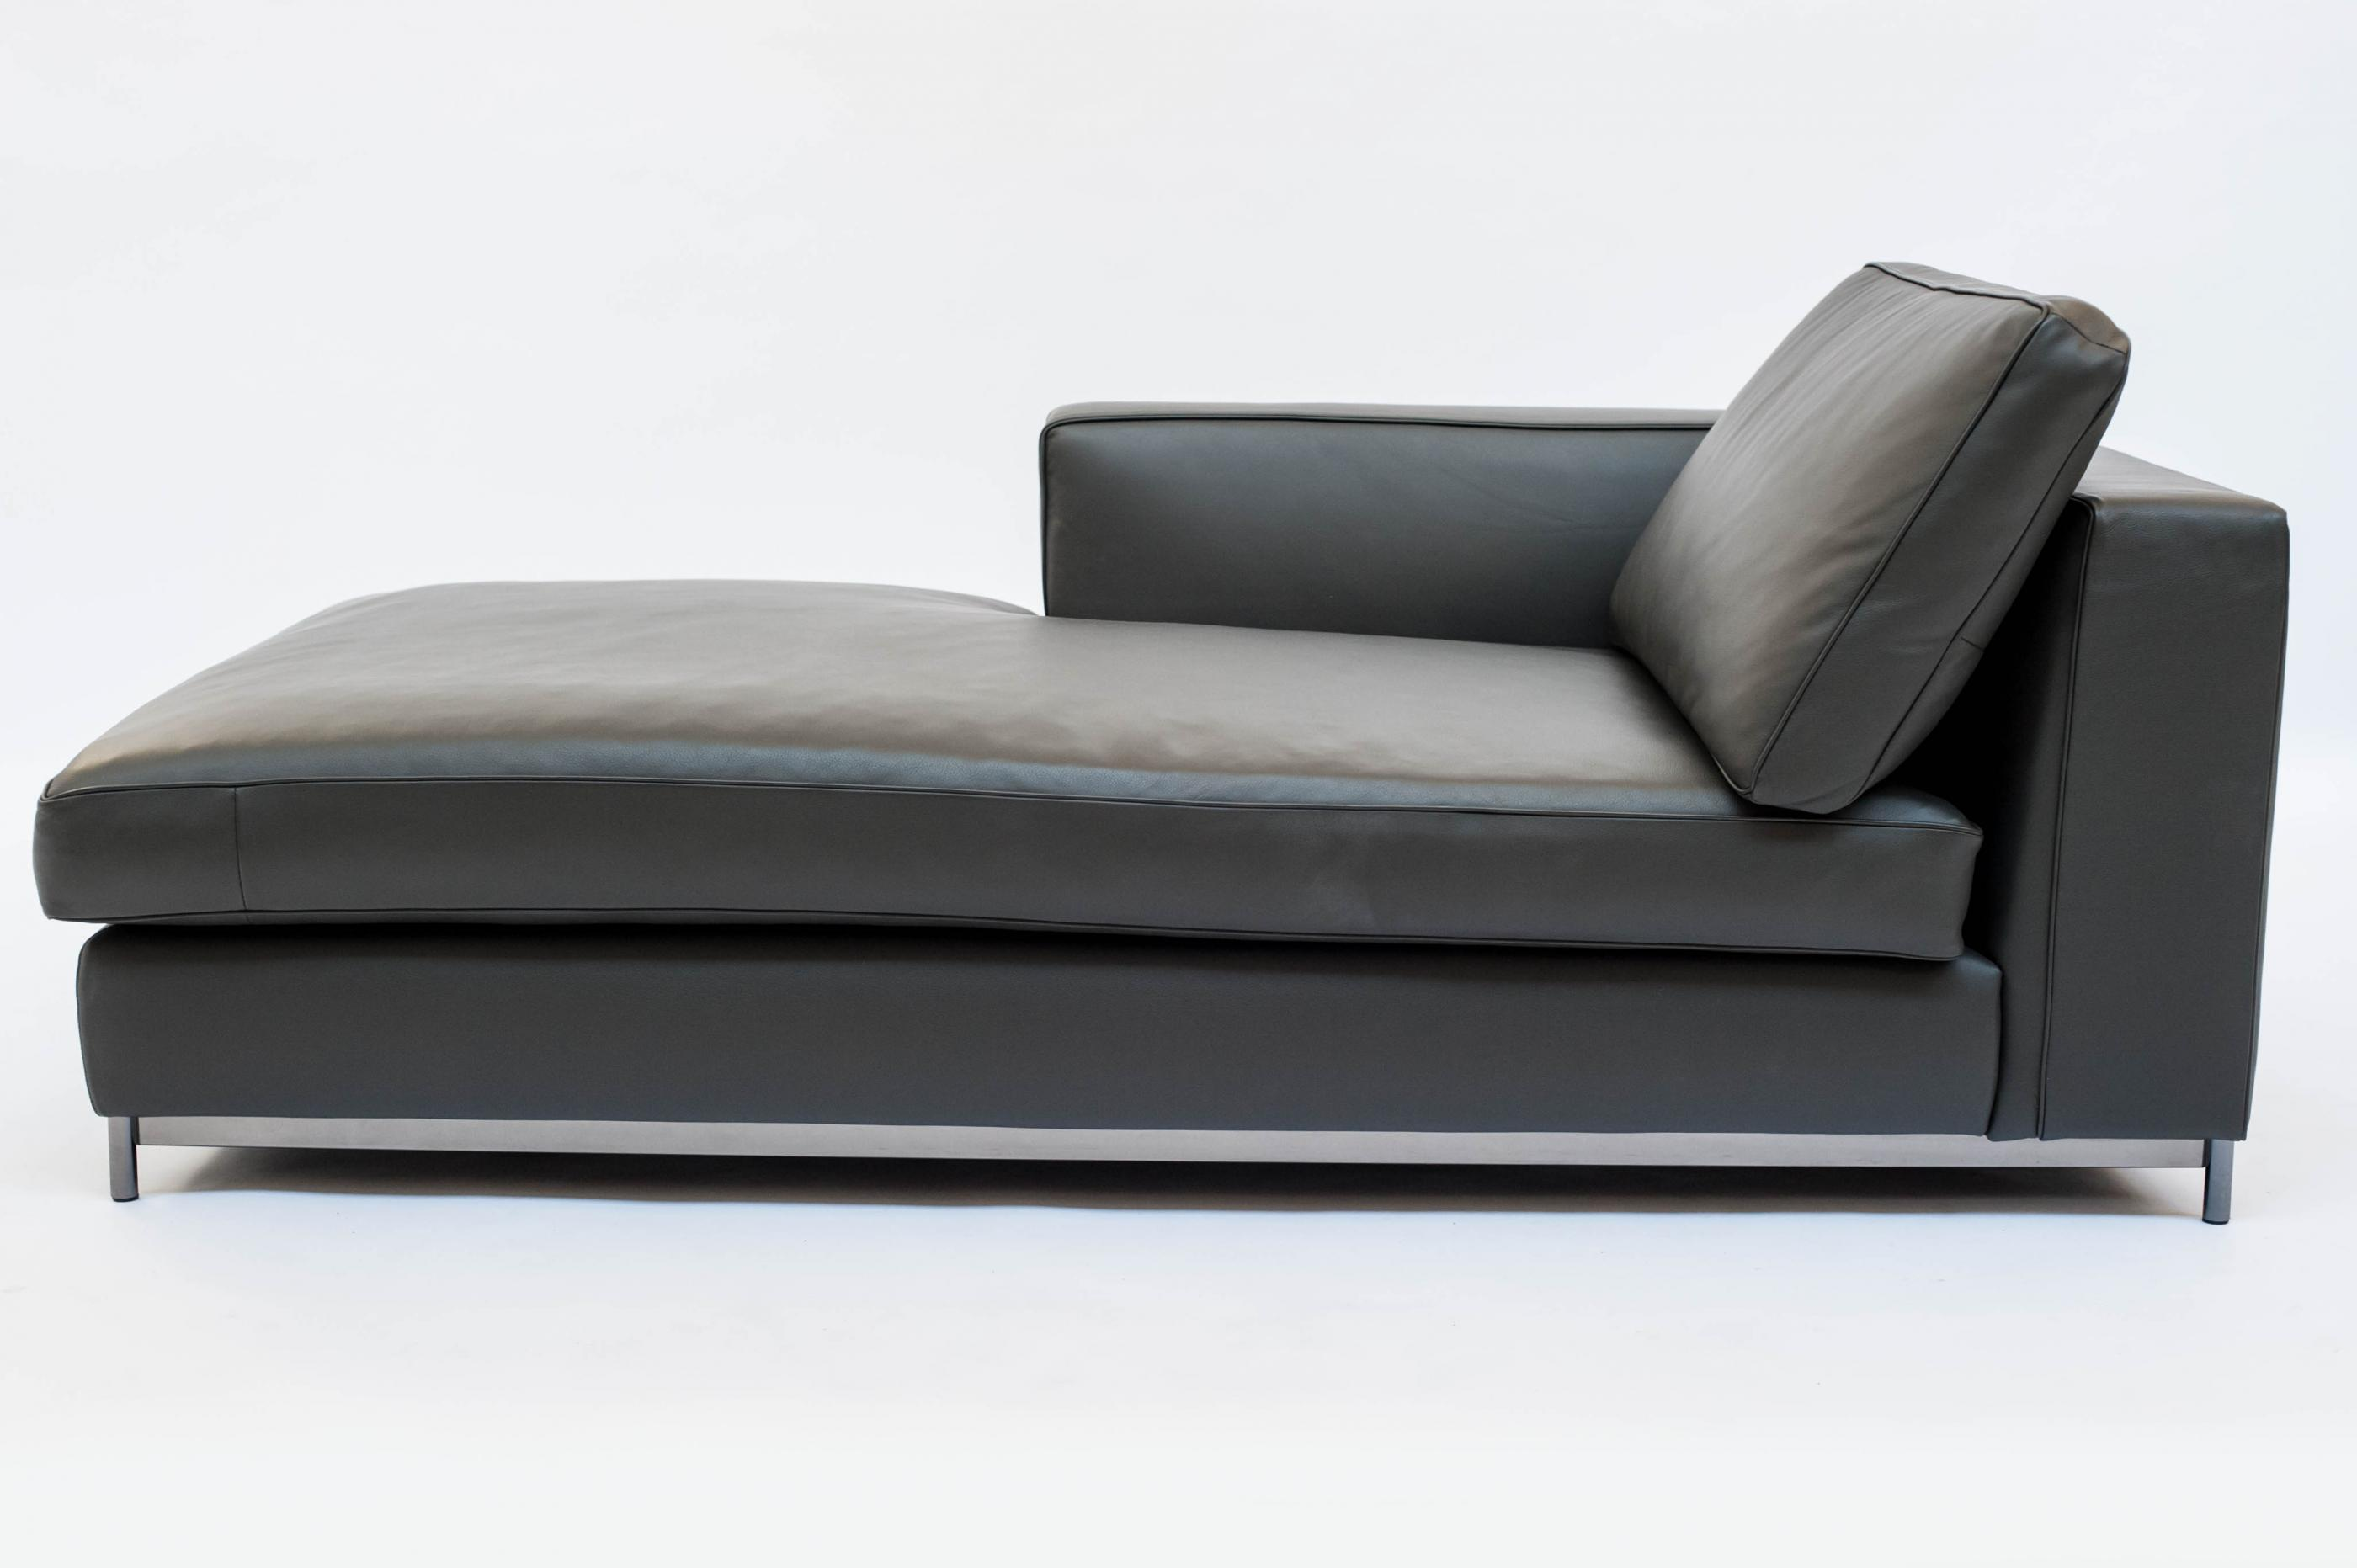 Chaise longue albers rodolfo dordoni minotti modernism for Chaise longue